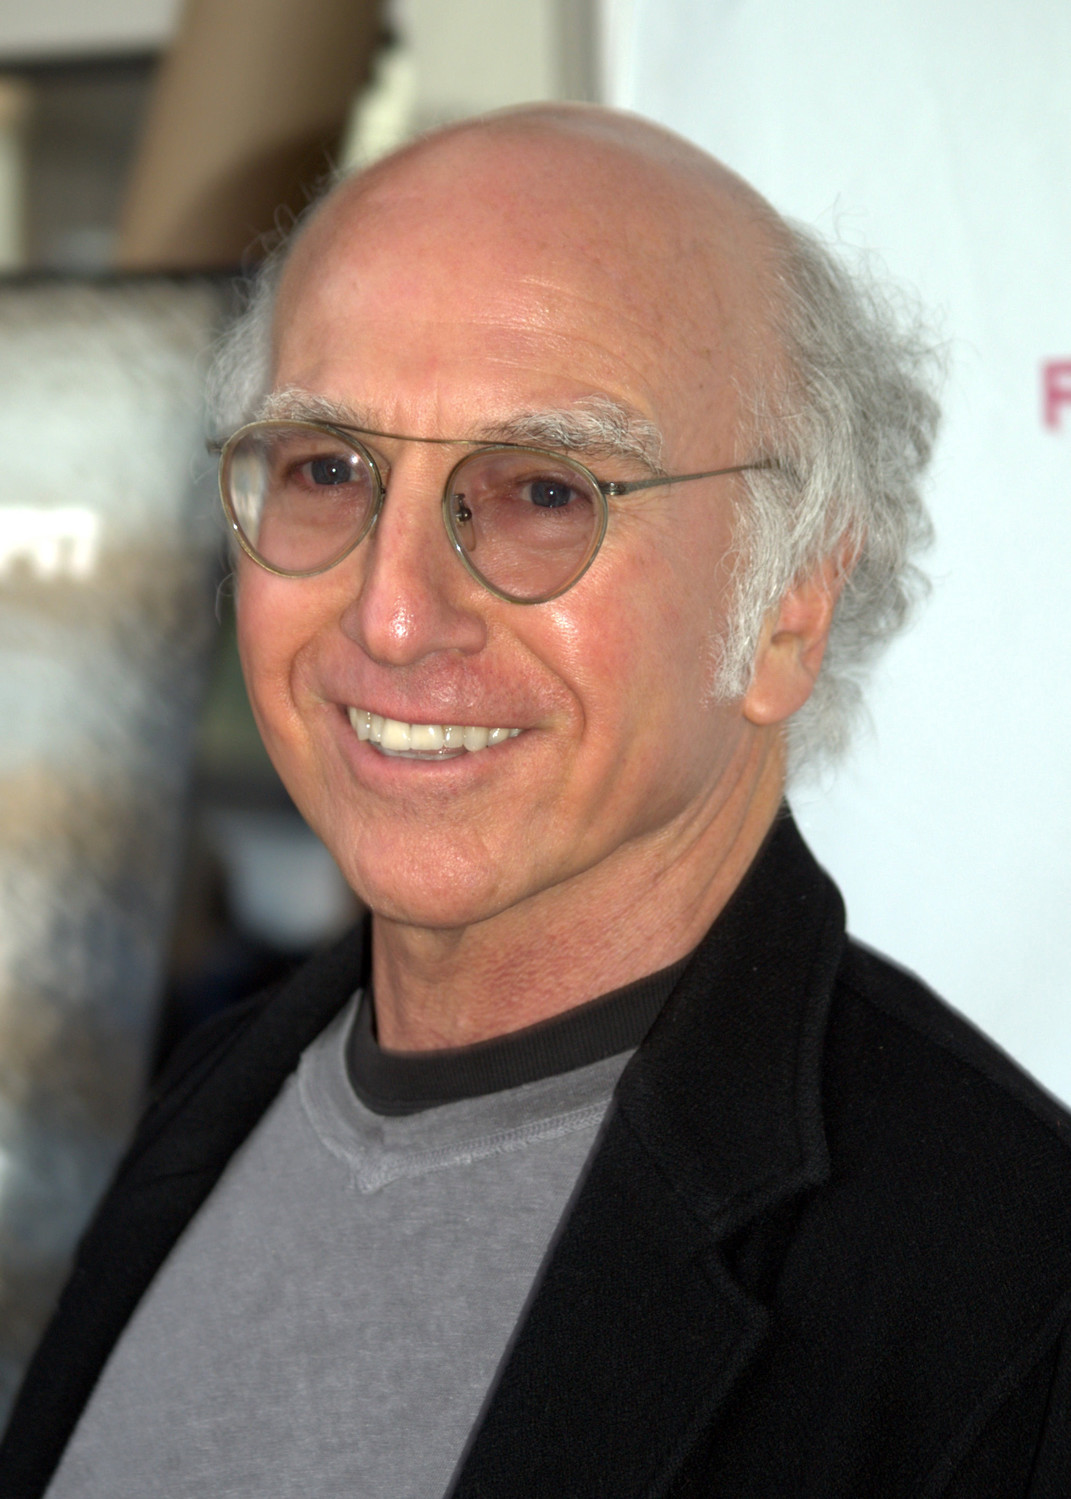 Larry David, who did Shoah comedy on SNL, at the Tribecca Film Festimval in 2009.